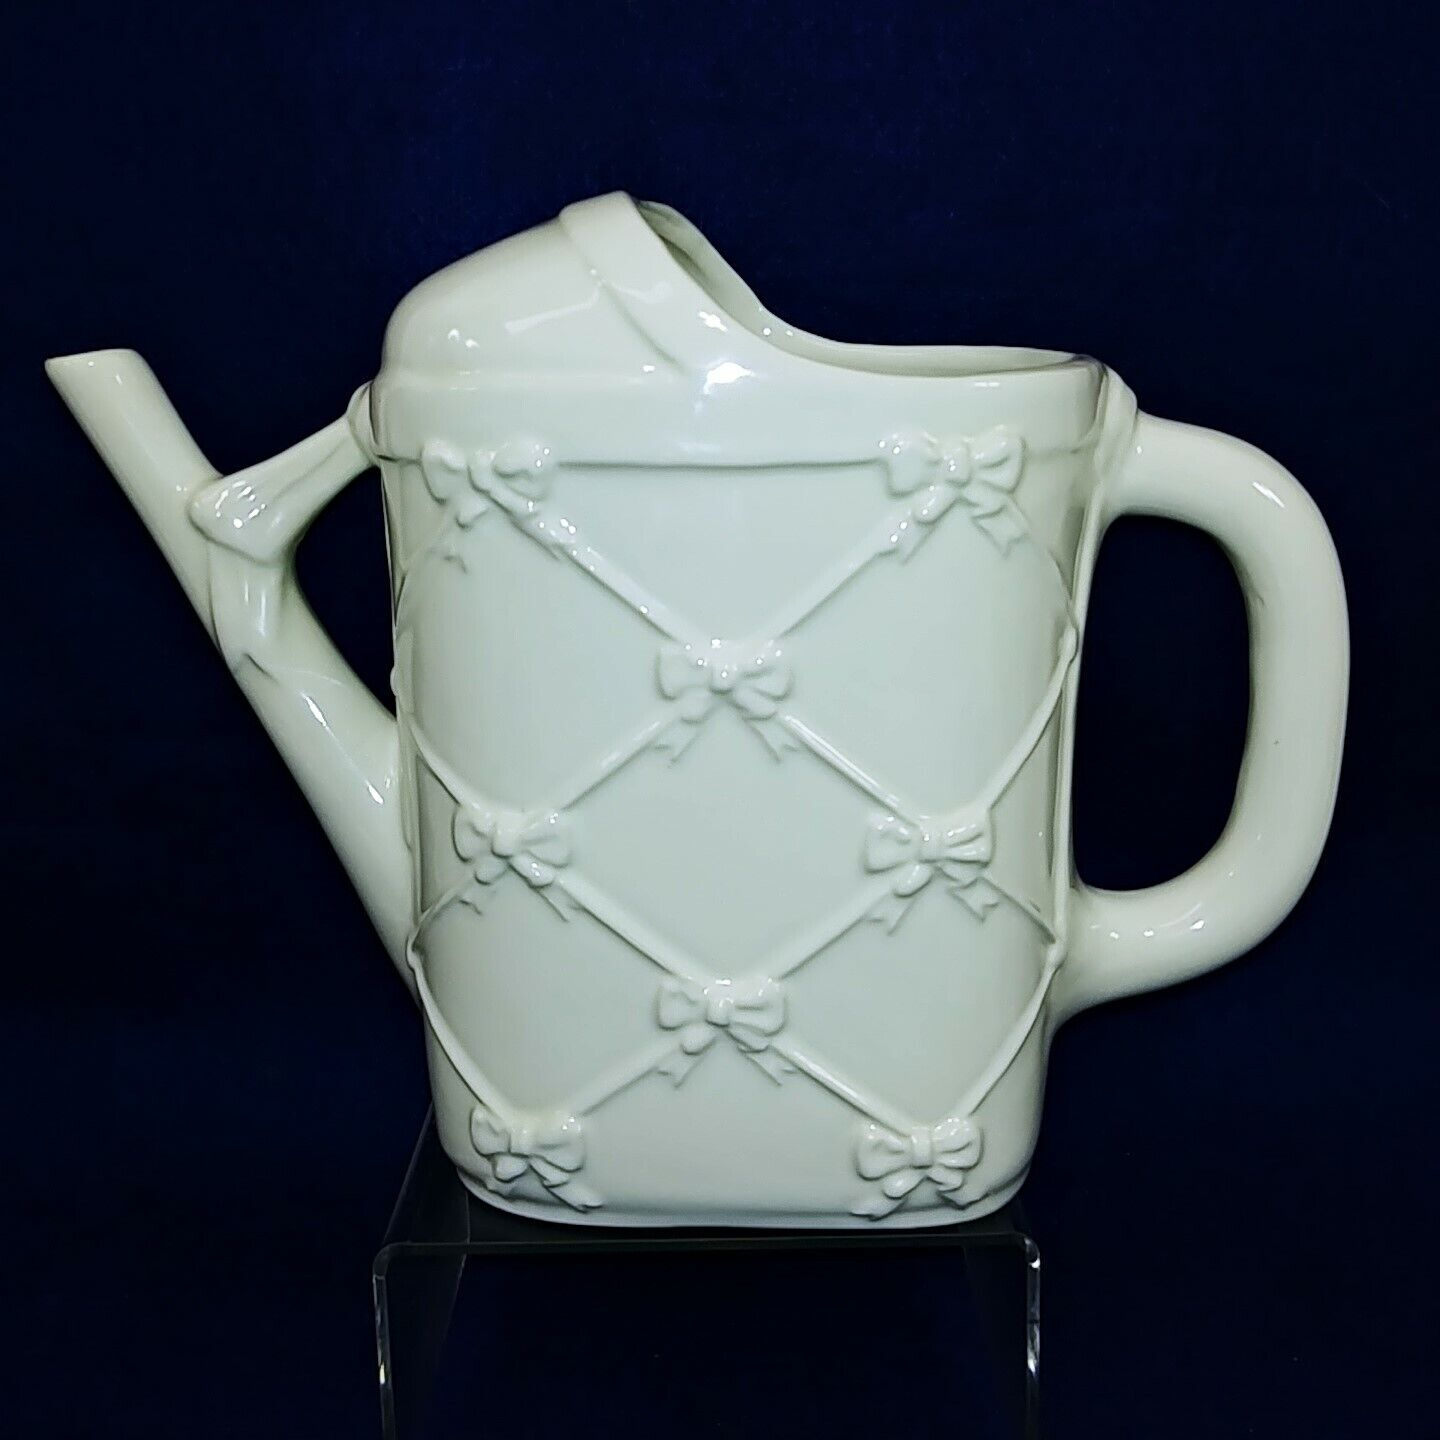 Watering Can Bowknot Motif by Lord & Taylor Made in Italy 8